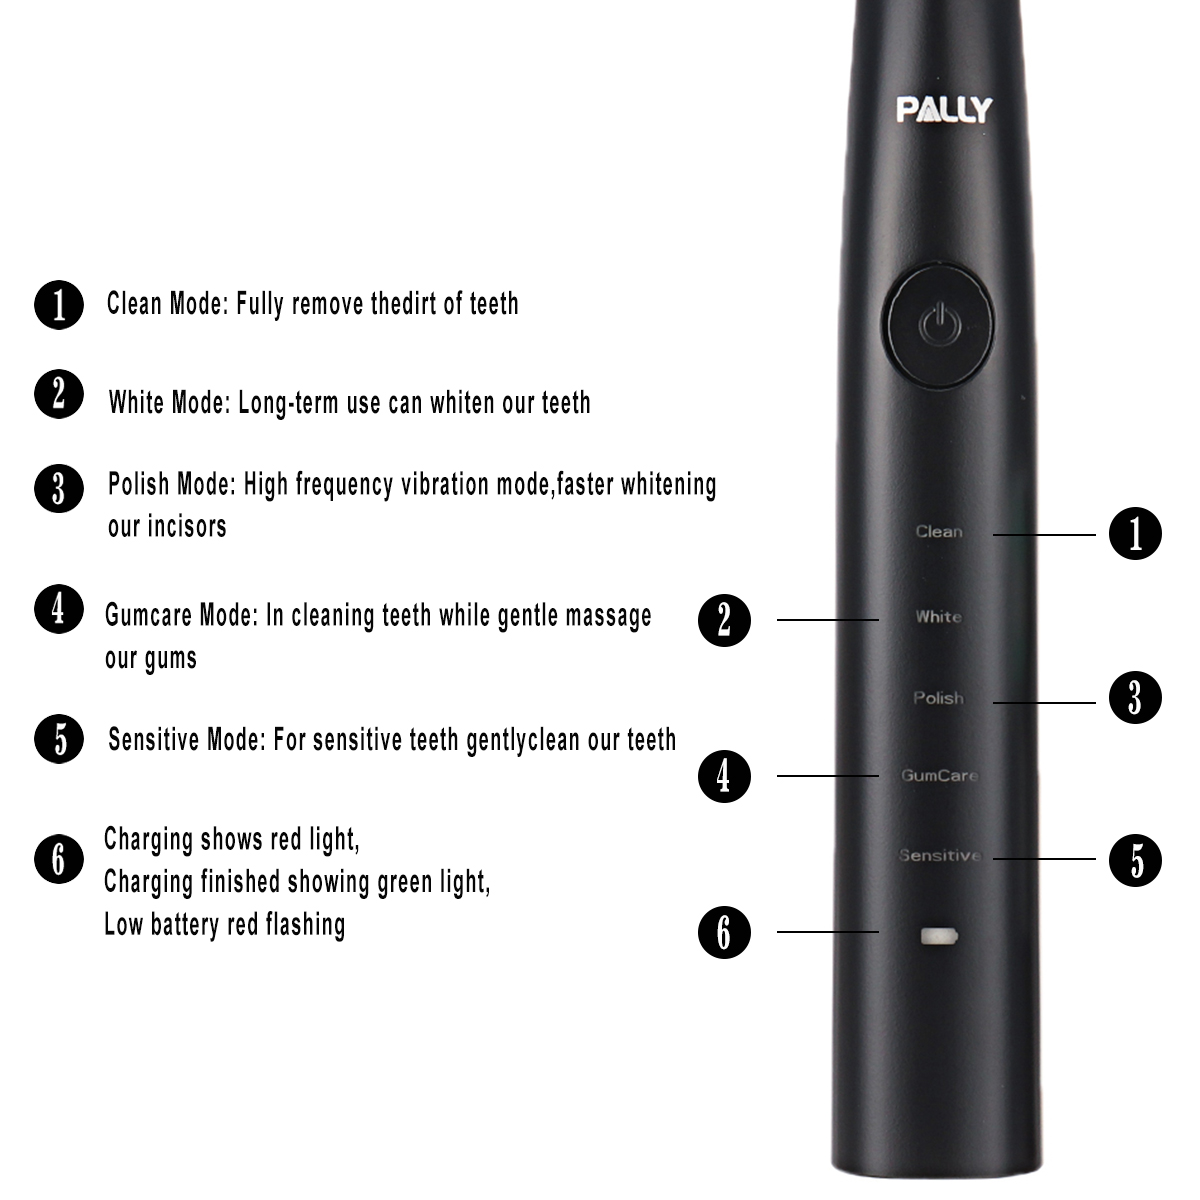 PALLY Electric Toothbrush Rechargeable Ultrasonic Vibration